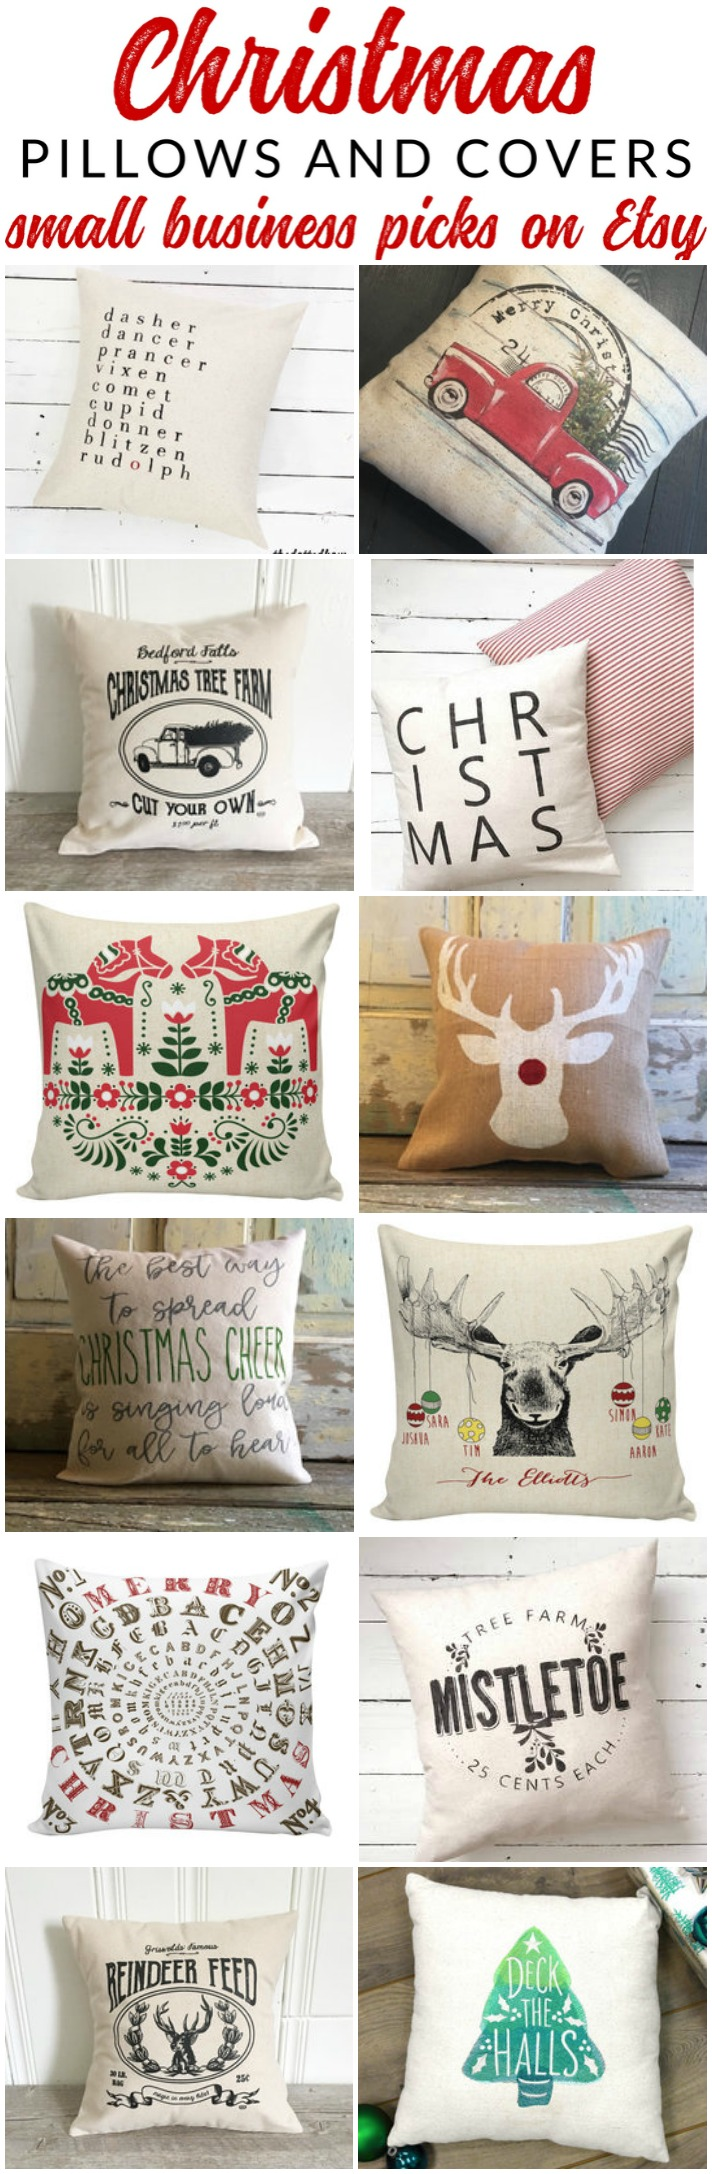 Farmhouse Style Christmas Pillows on Etsy - The Crazy Craft Lady